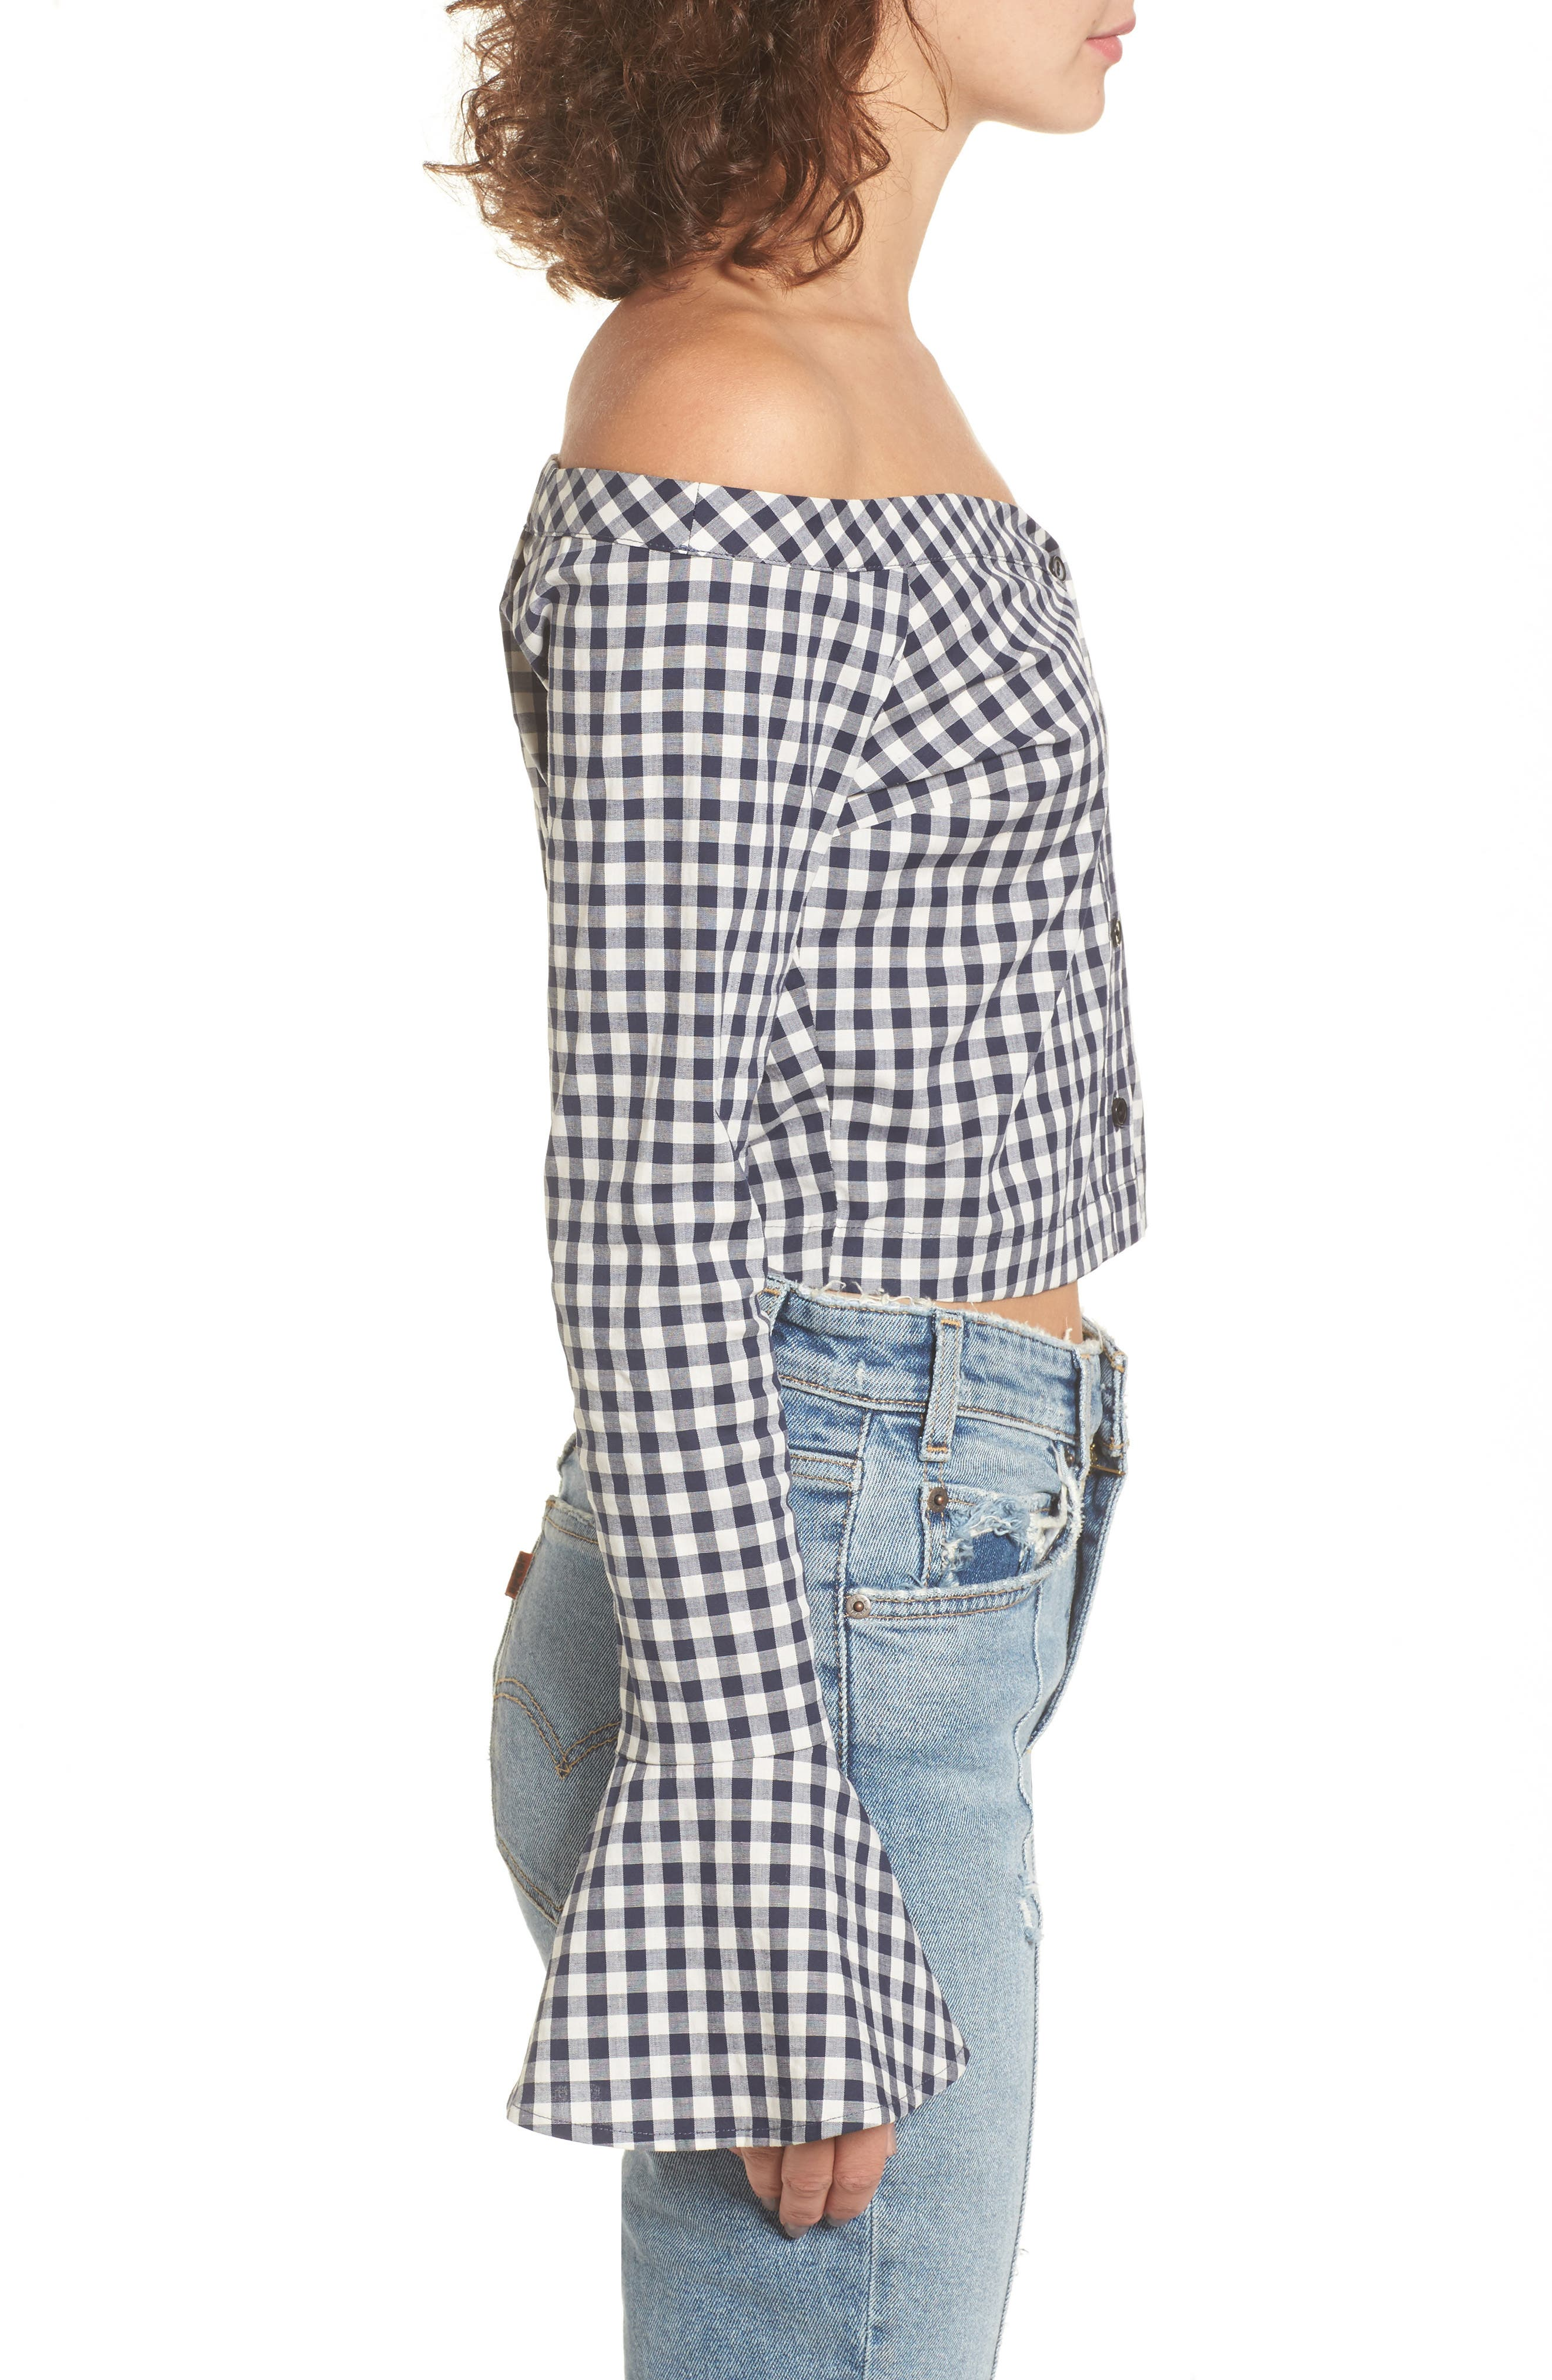 Bell Sleeve Off the Shoulder Crop Top,                             Alternate thumbnail 3, color,                             Navy/ White Gingham